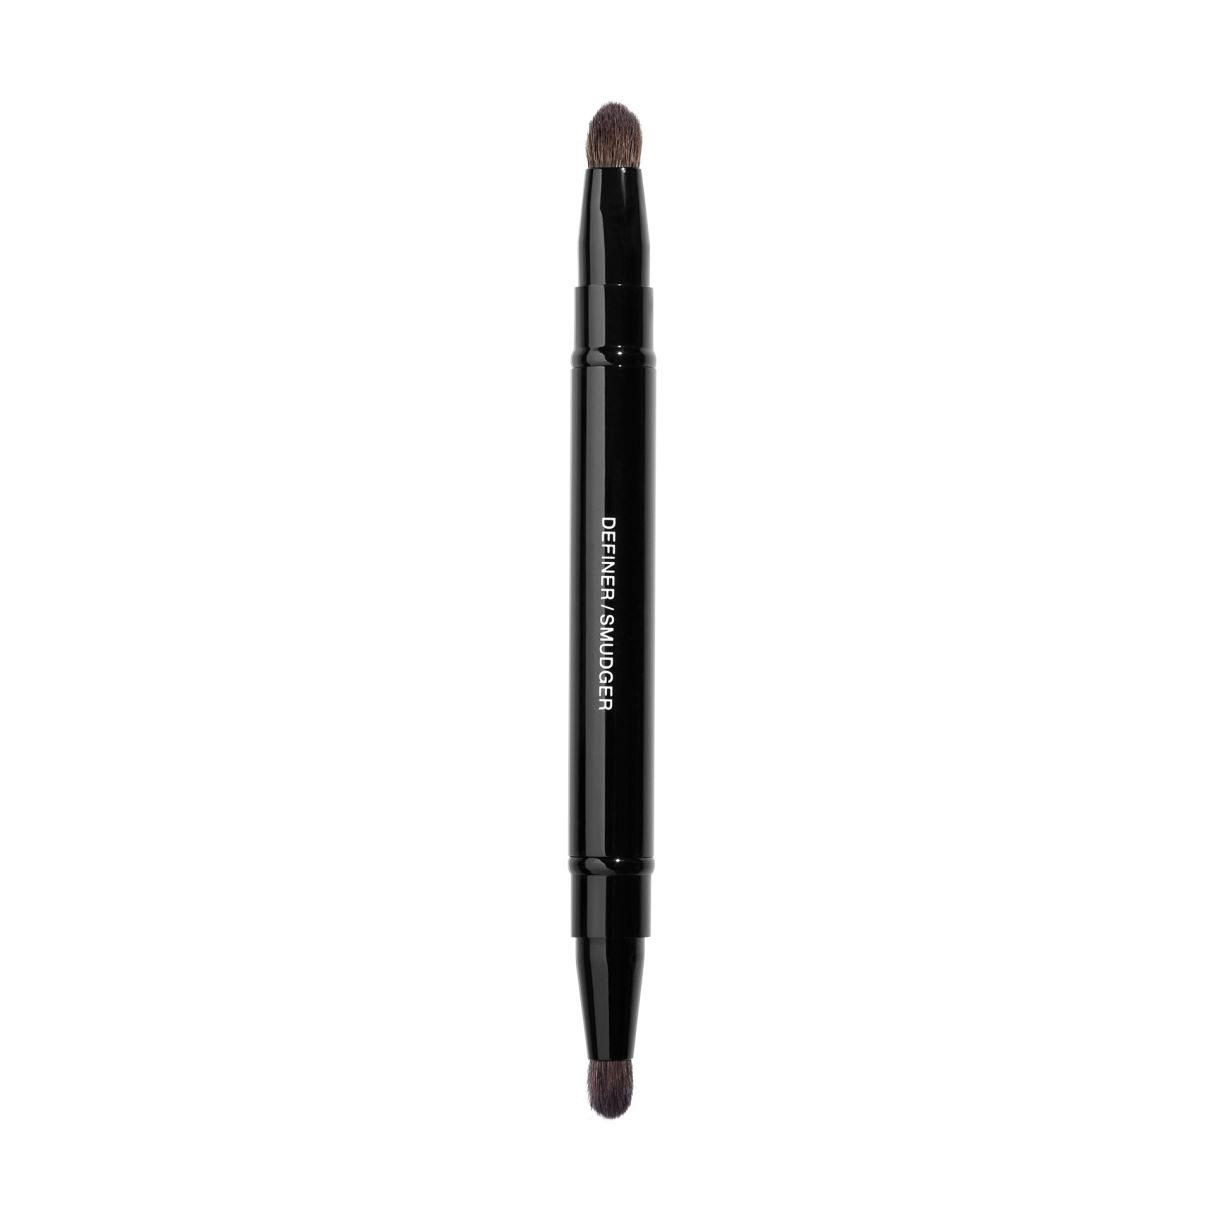 PINCEAU DUO CONTOUR YEUX RÉTRACTABLE RETRACTABLE DUAL-TIP EYE-CONTOURING BRUSH 1PCE